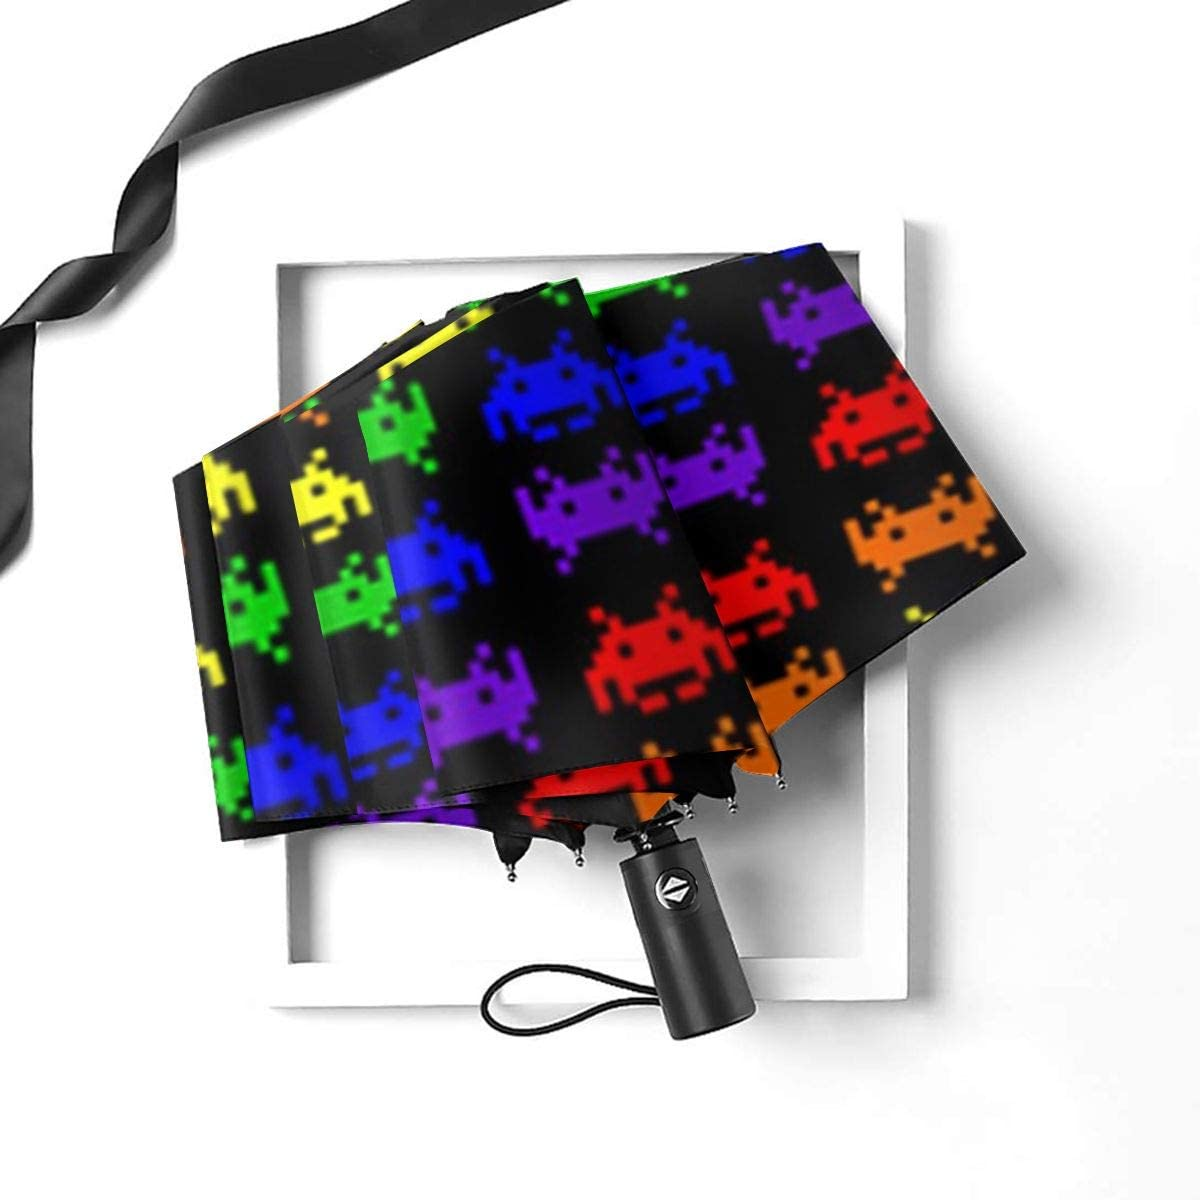 Retro Space Invaders Umbrella Compact Rain/&Wind Repellent Umbrellas Sun Protection With Anti UV Coating Travel Auto Folding Umbrella